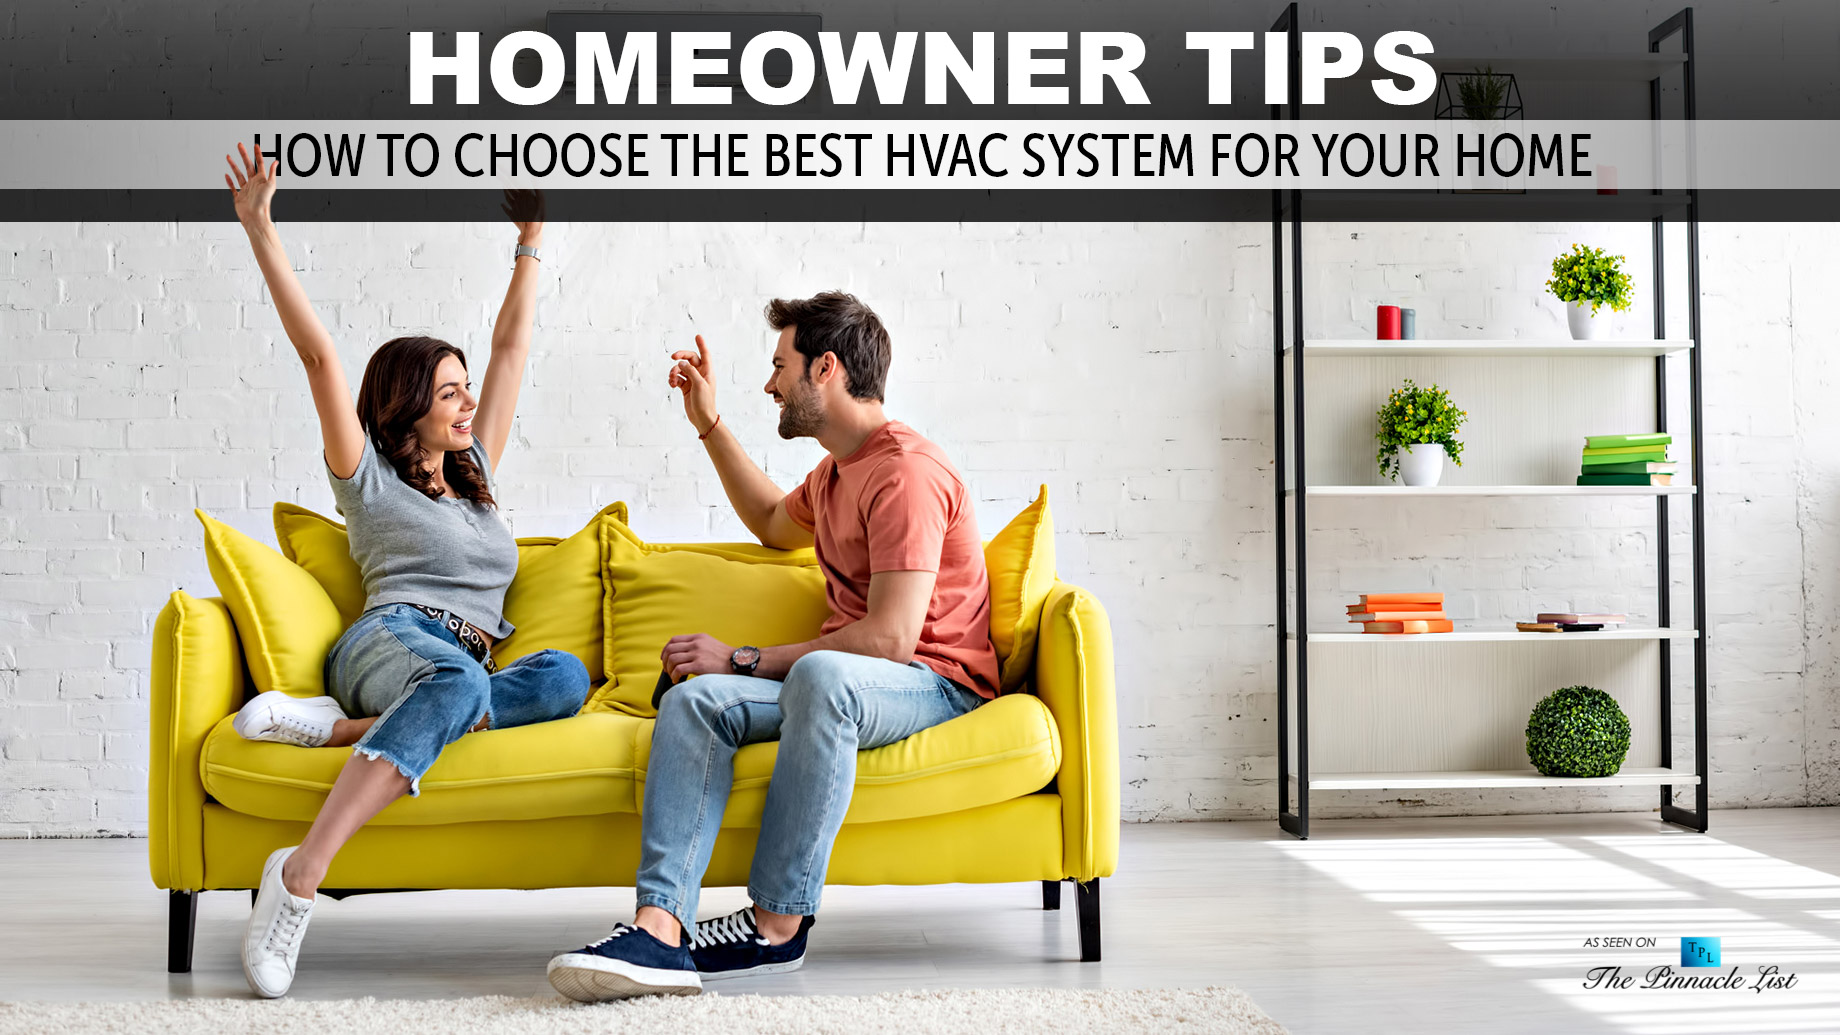 Homeowner Tips - How to Choose the Best HVAC System for Your Home